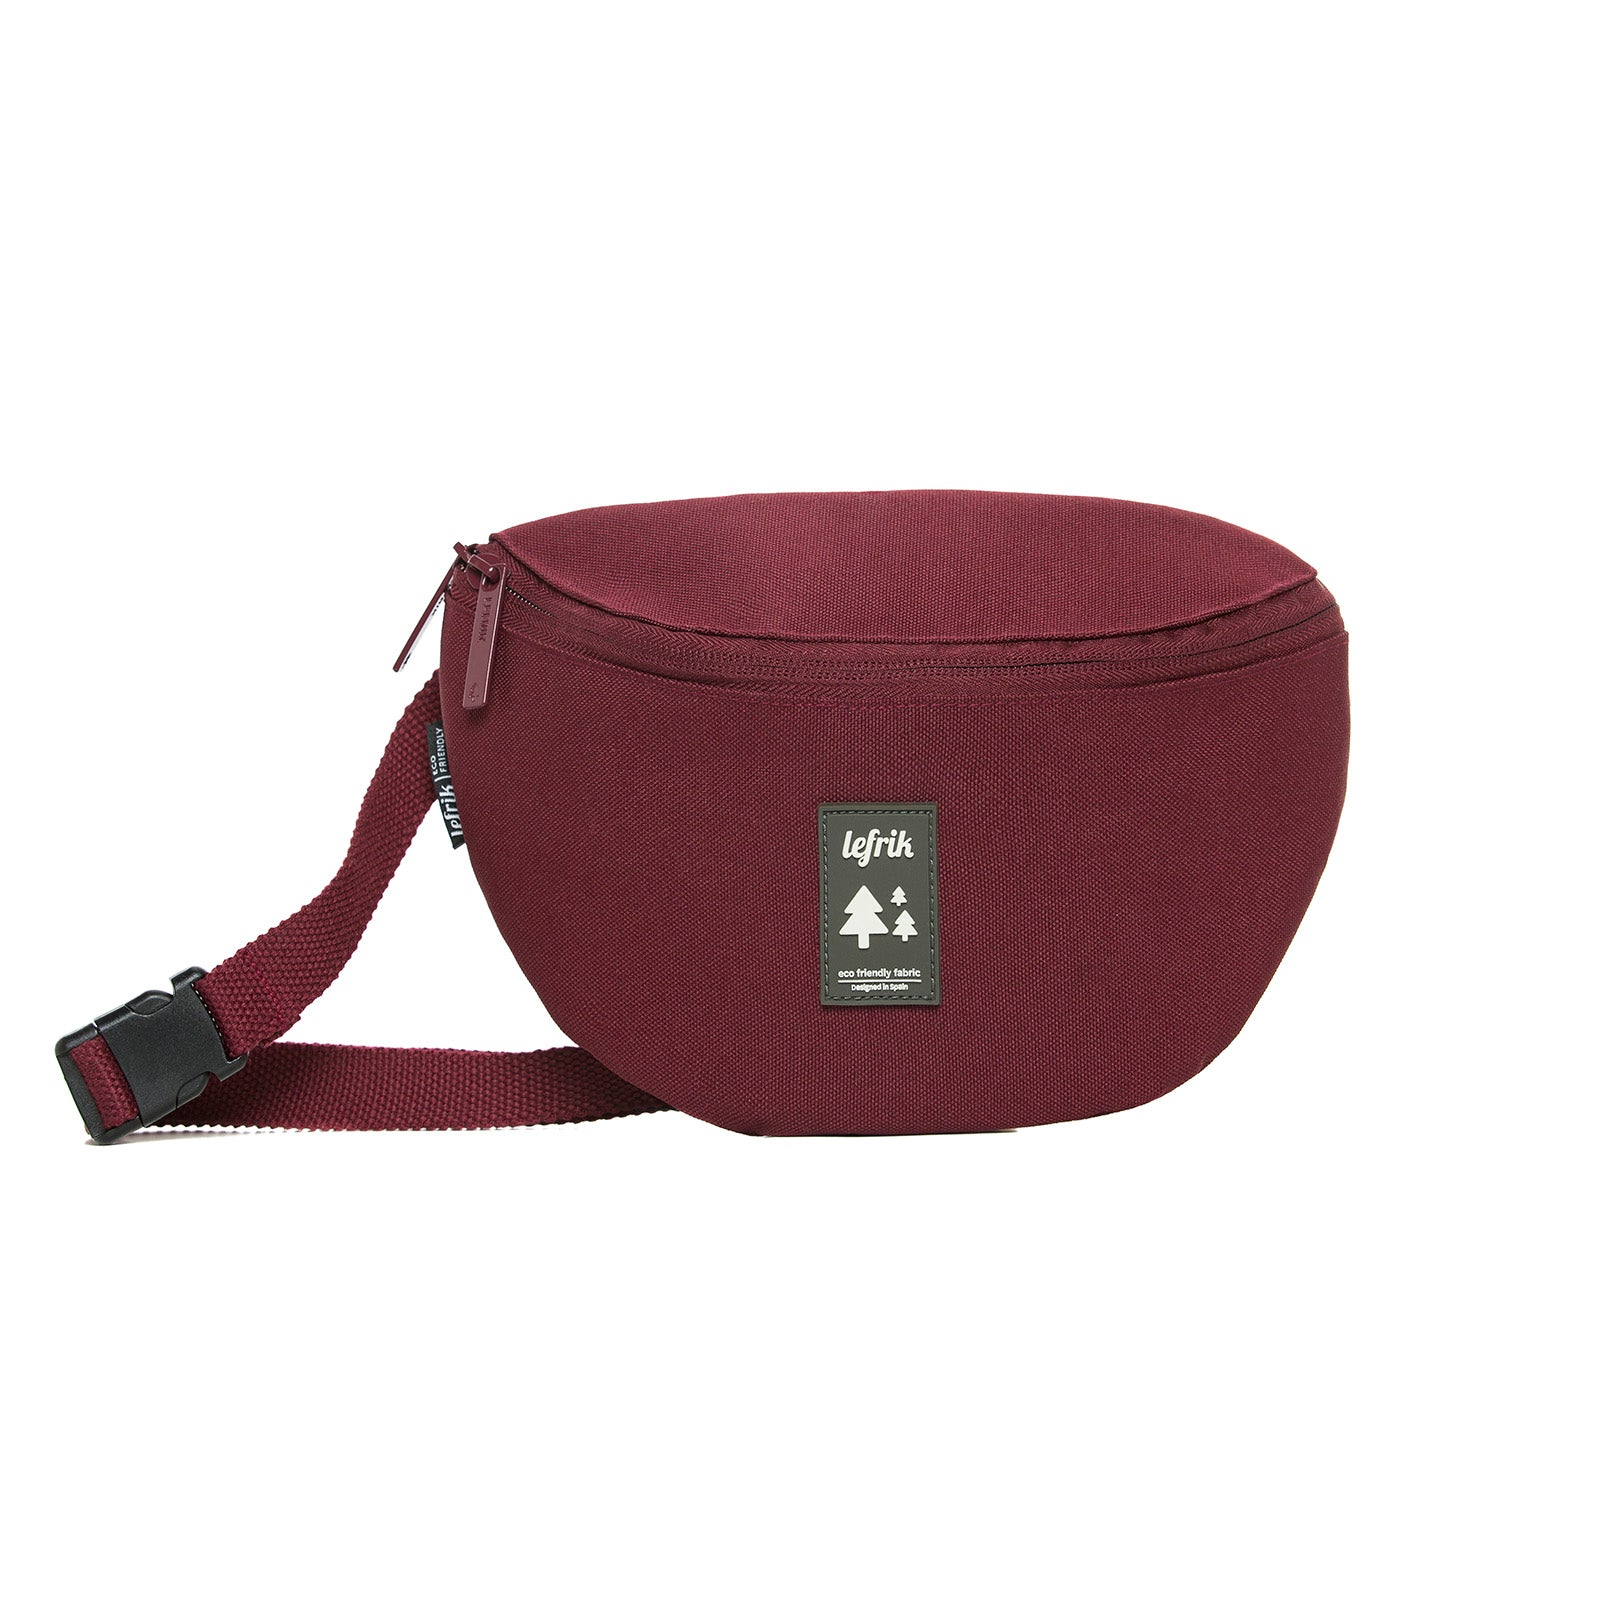 Beat Bum Bag | Accessories | Lefrik | [product_tag] - Fair Bazaar Ethical Living